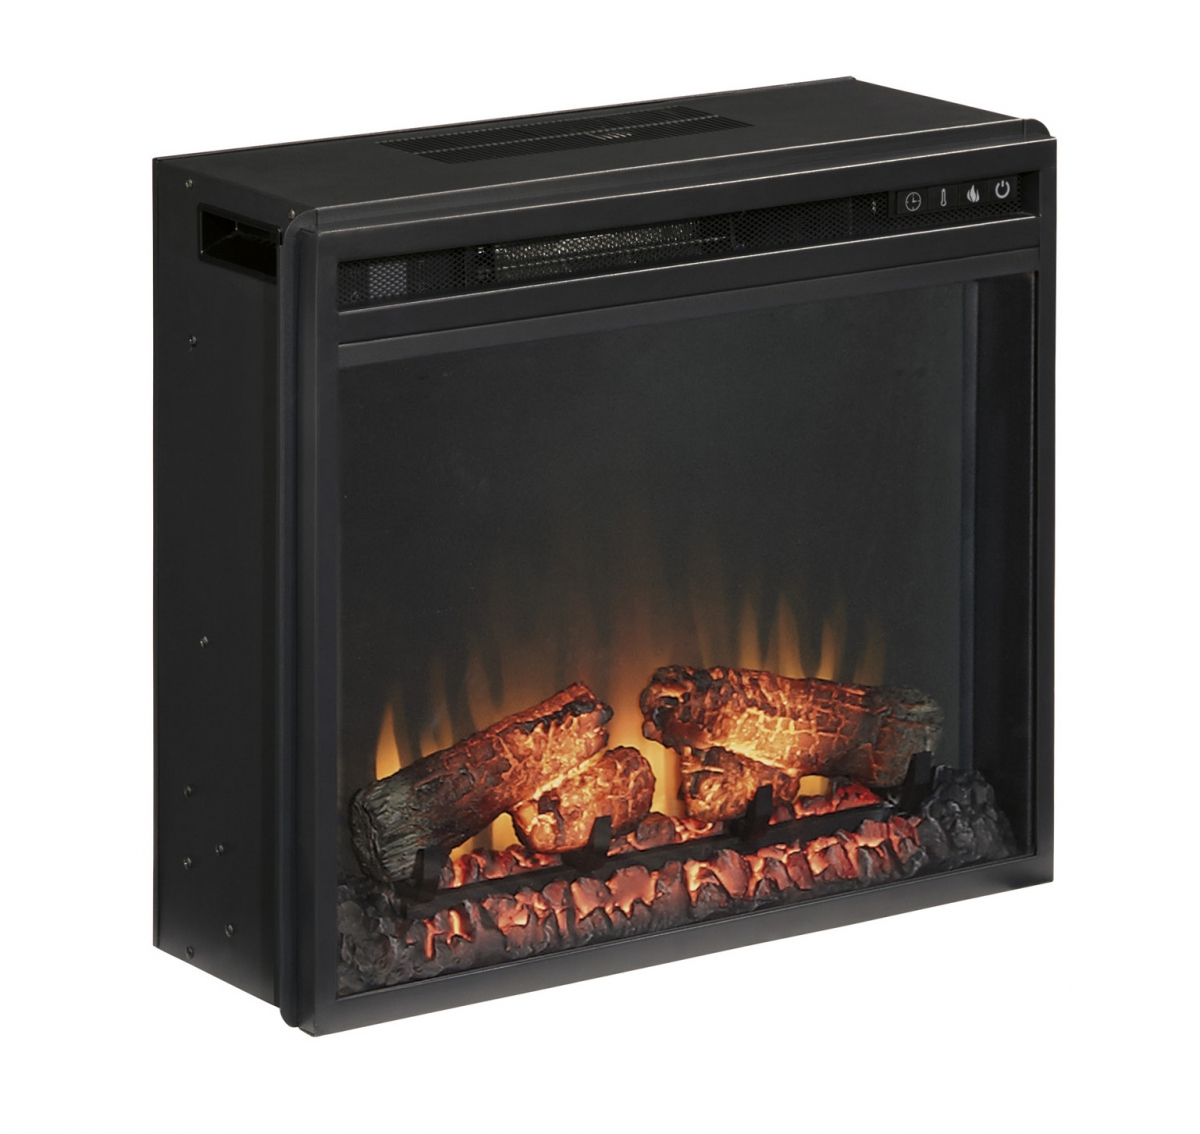 the classy home furnishing best home furniture stores entertainment accessories black metal fireplace insert